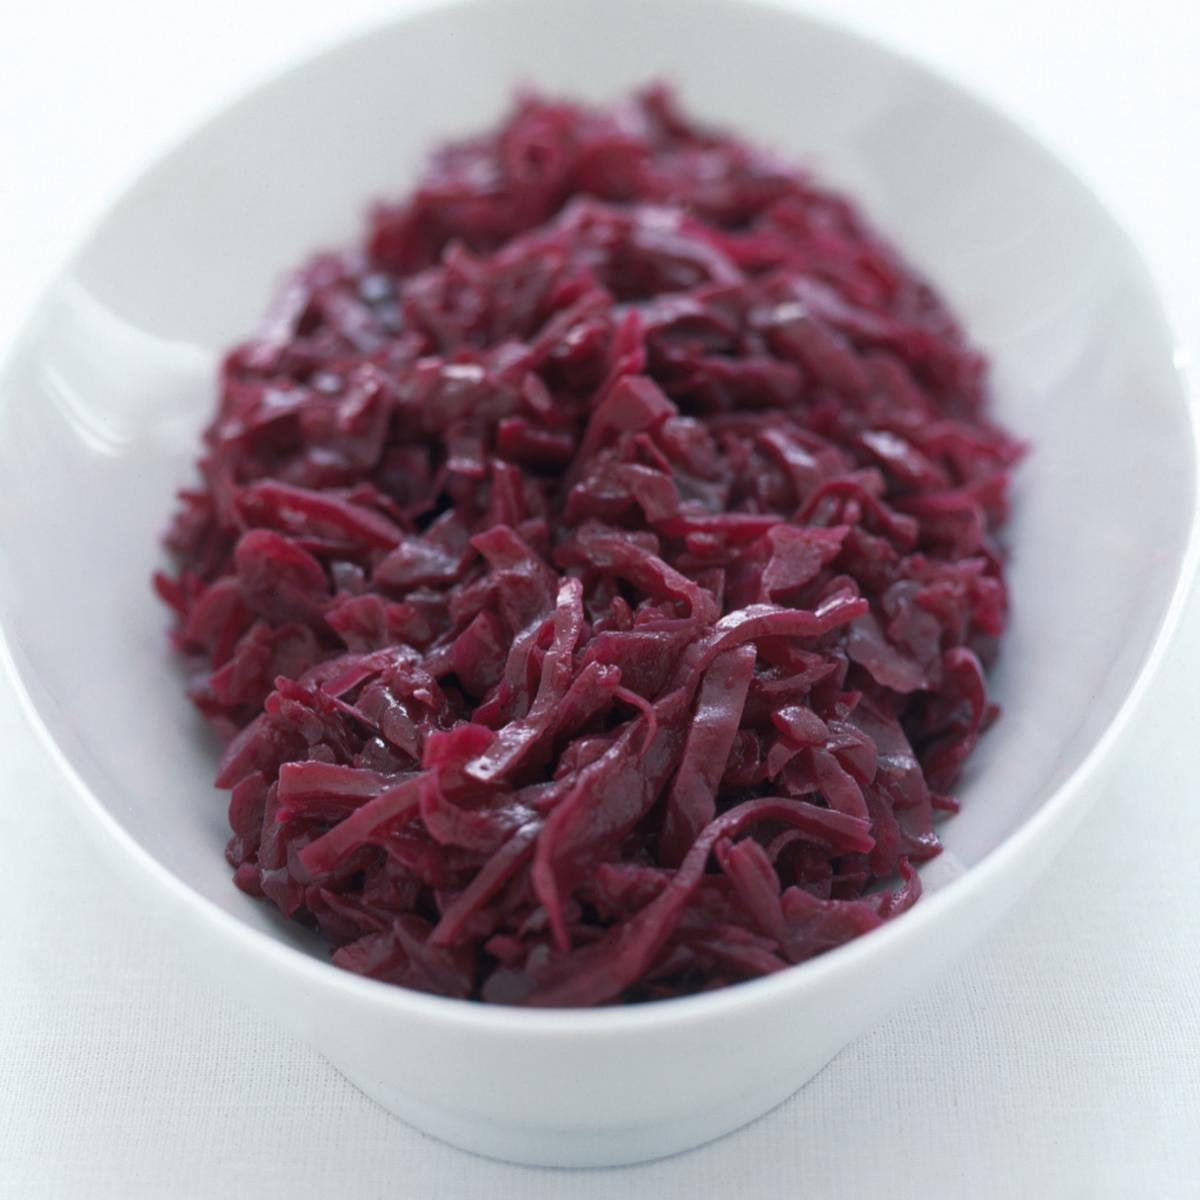 Happy traditional braised red cabbage with apples